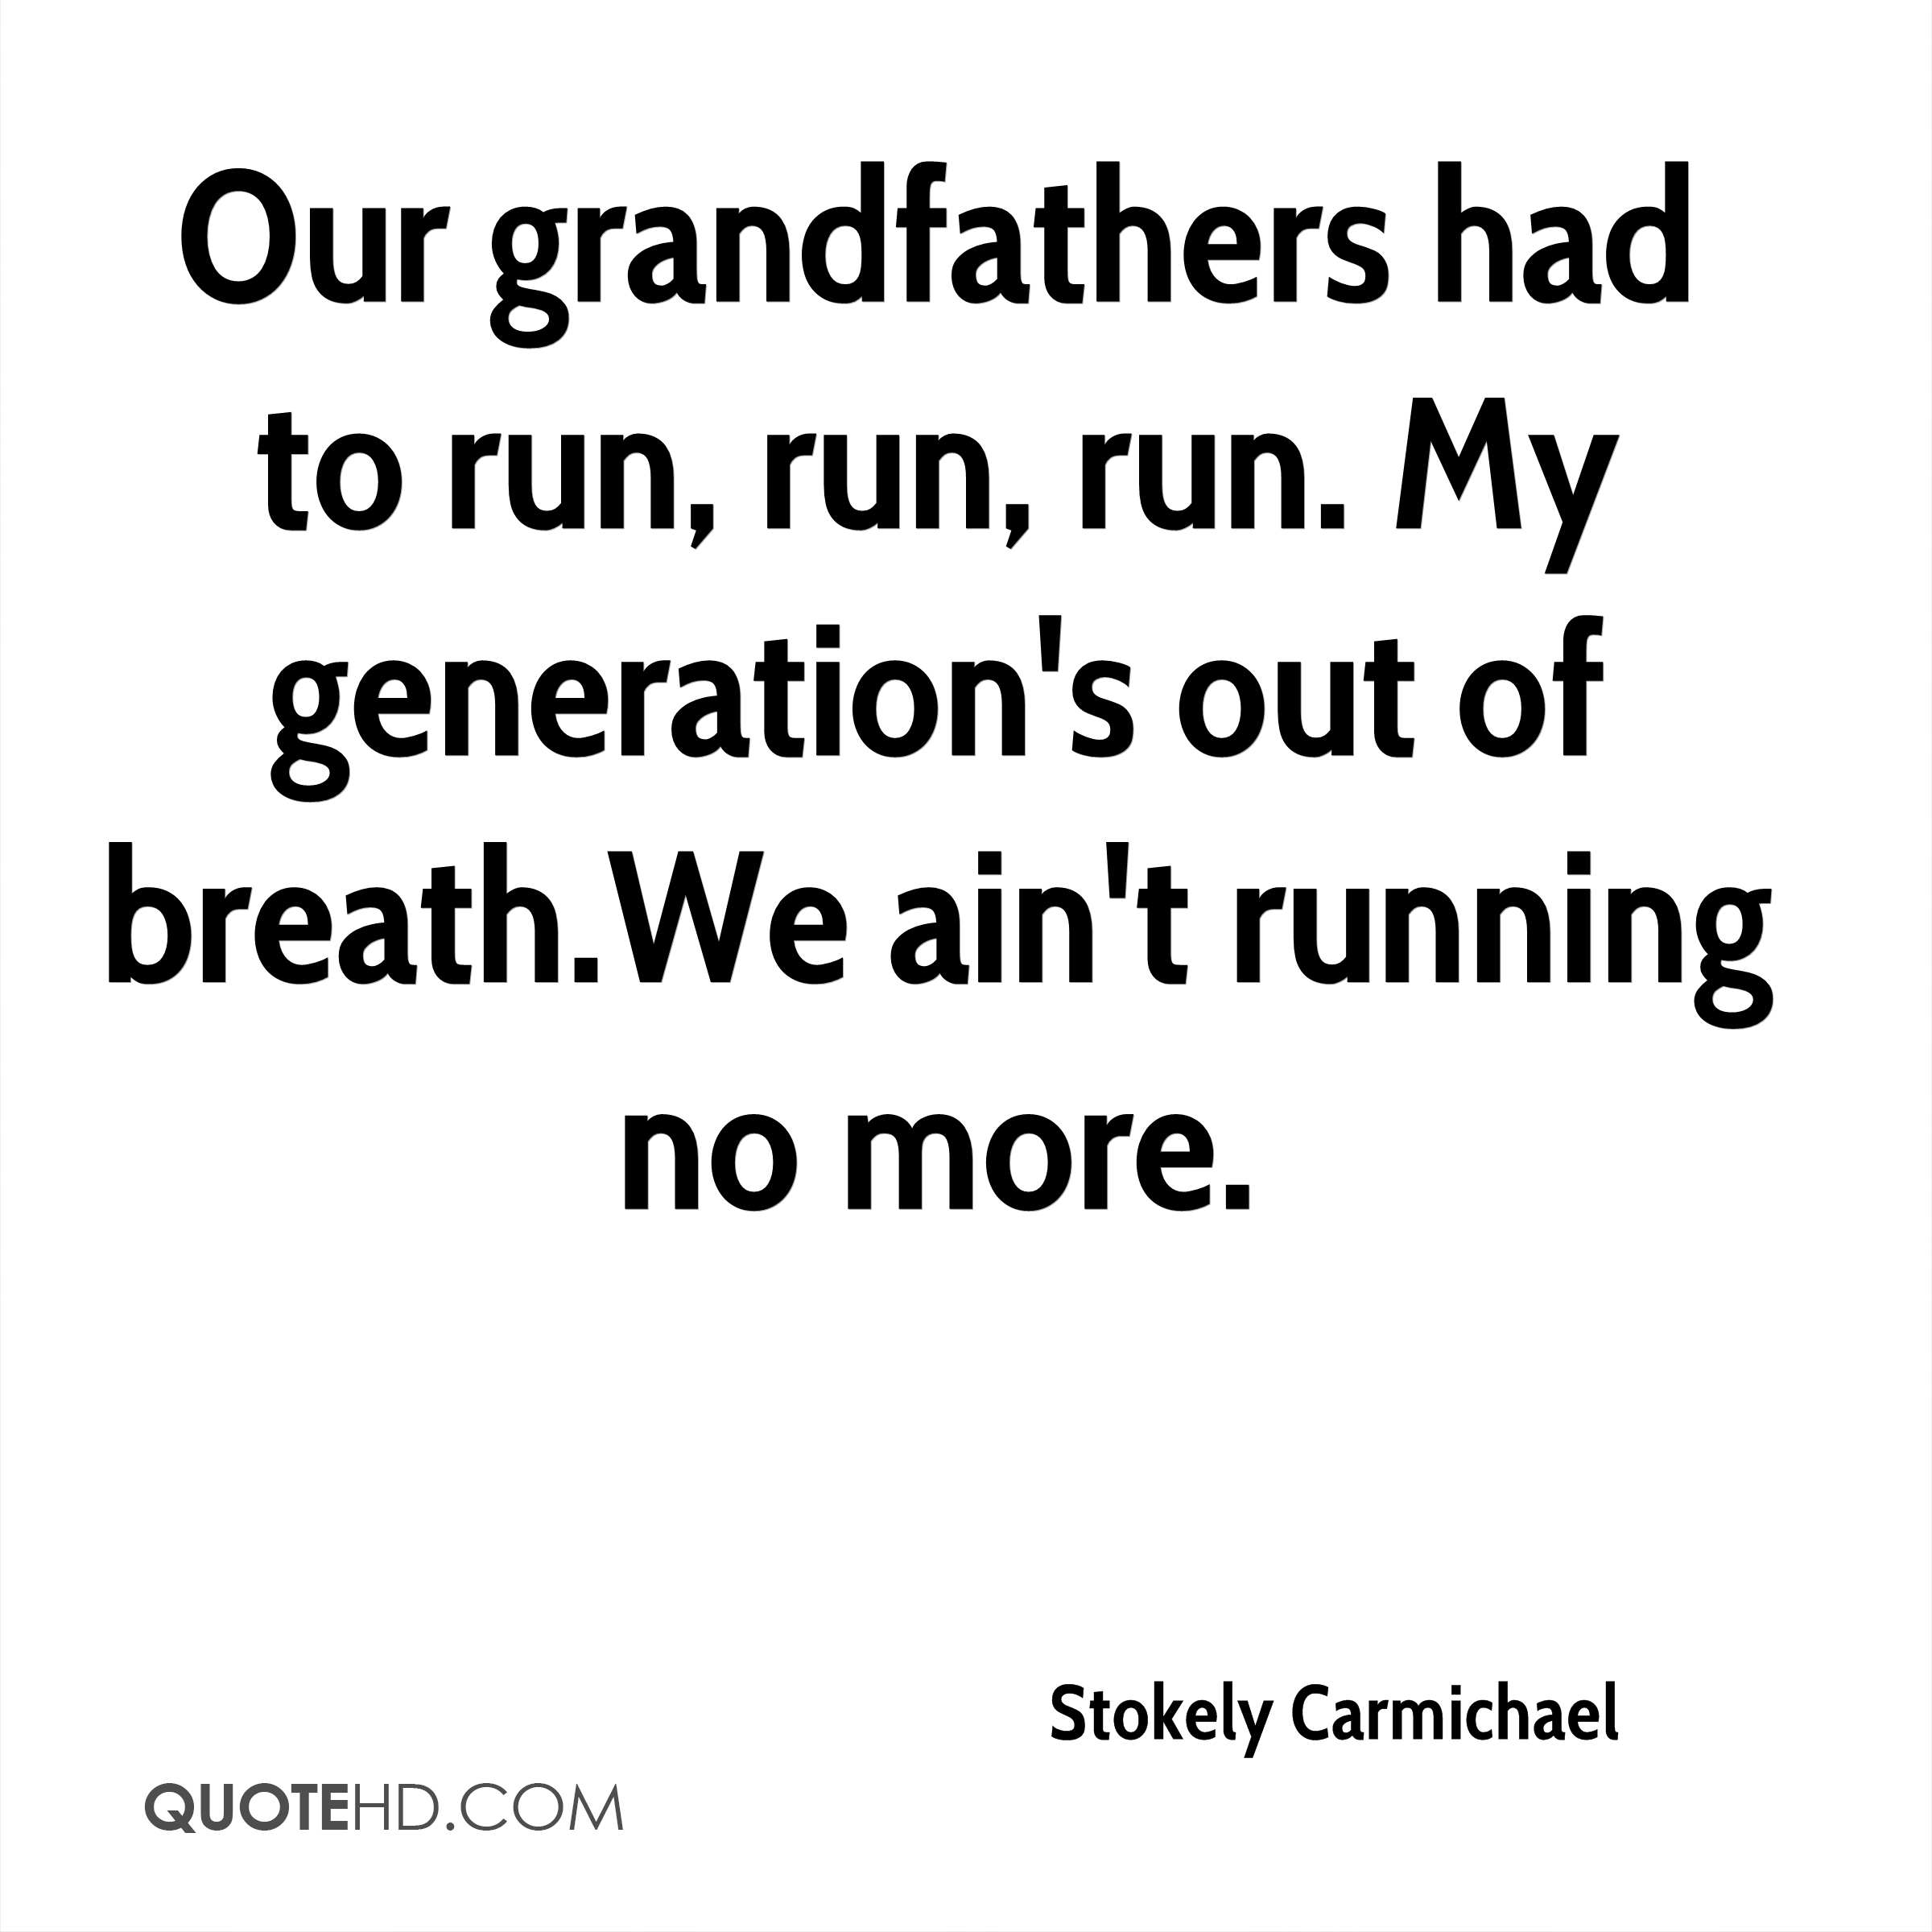 Our grandfathers had to run, run, run. My generation's out of breath.We ain't running no more.